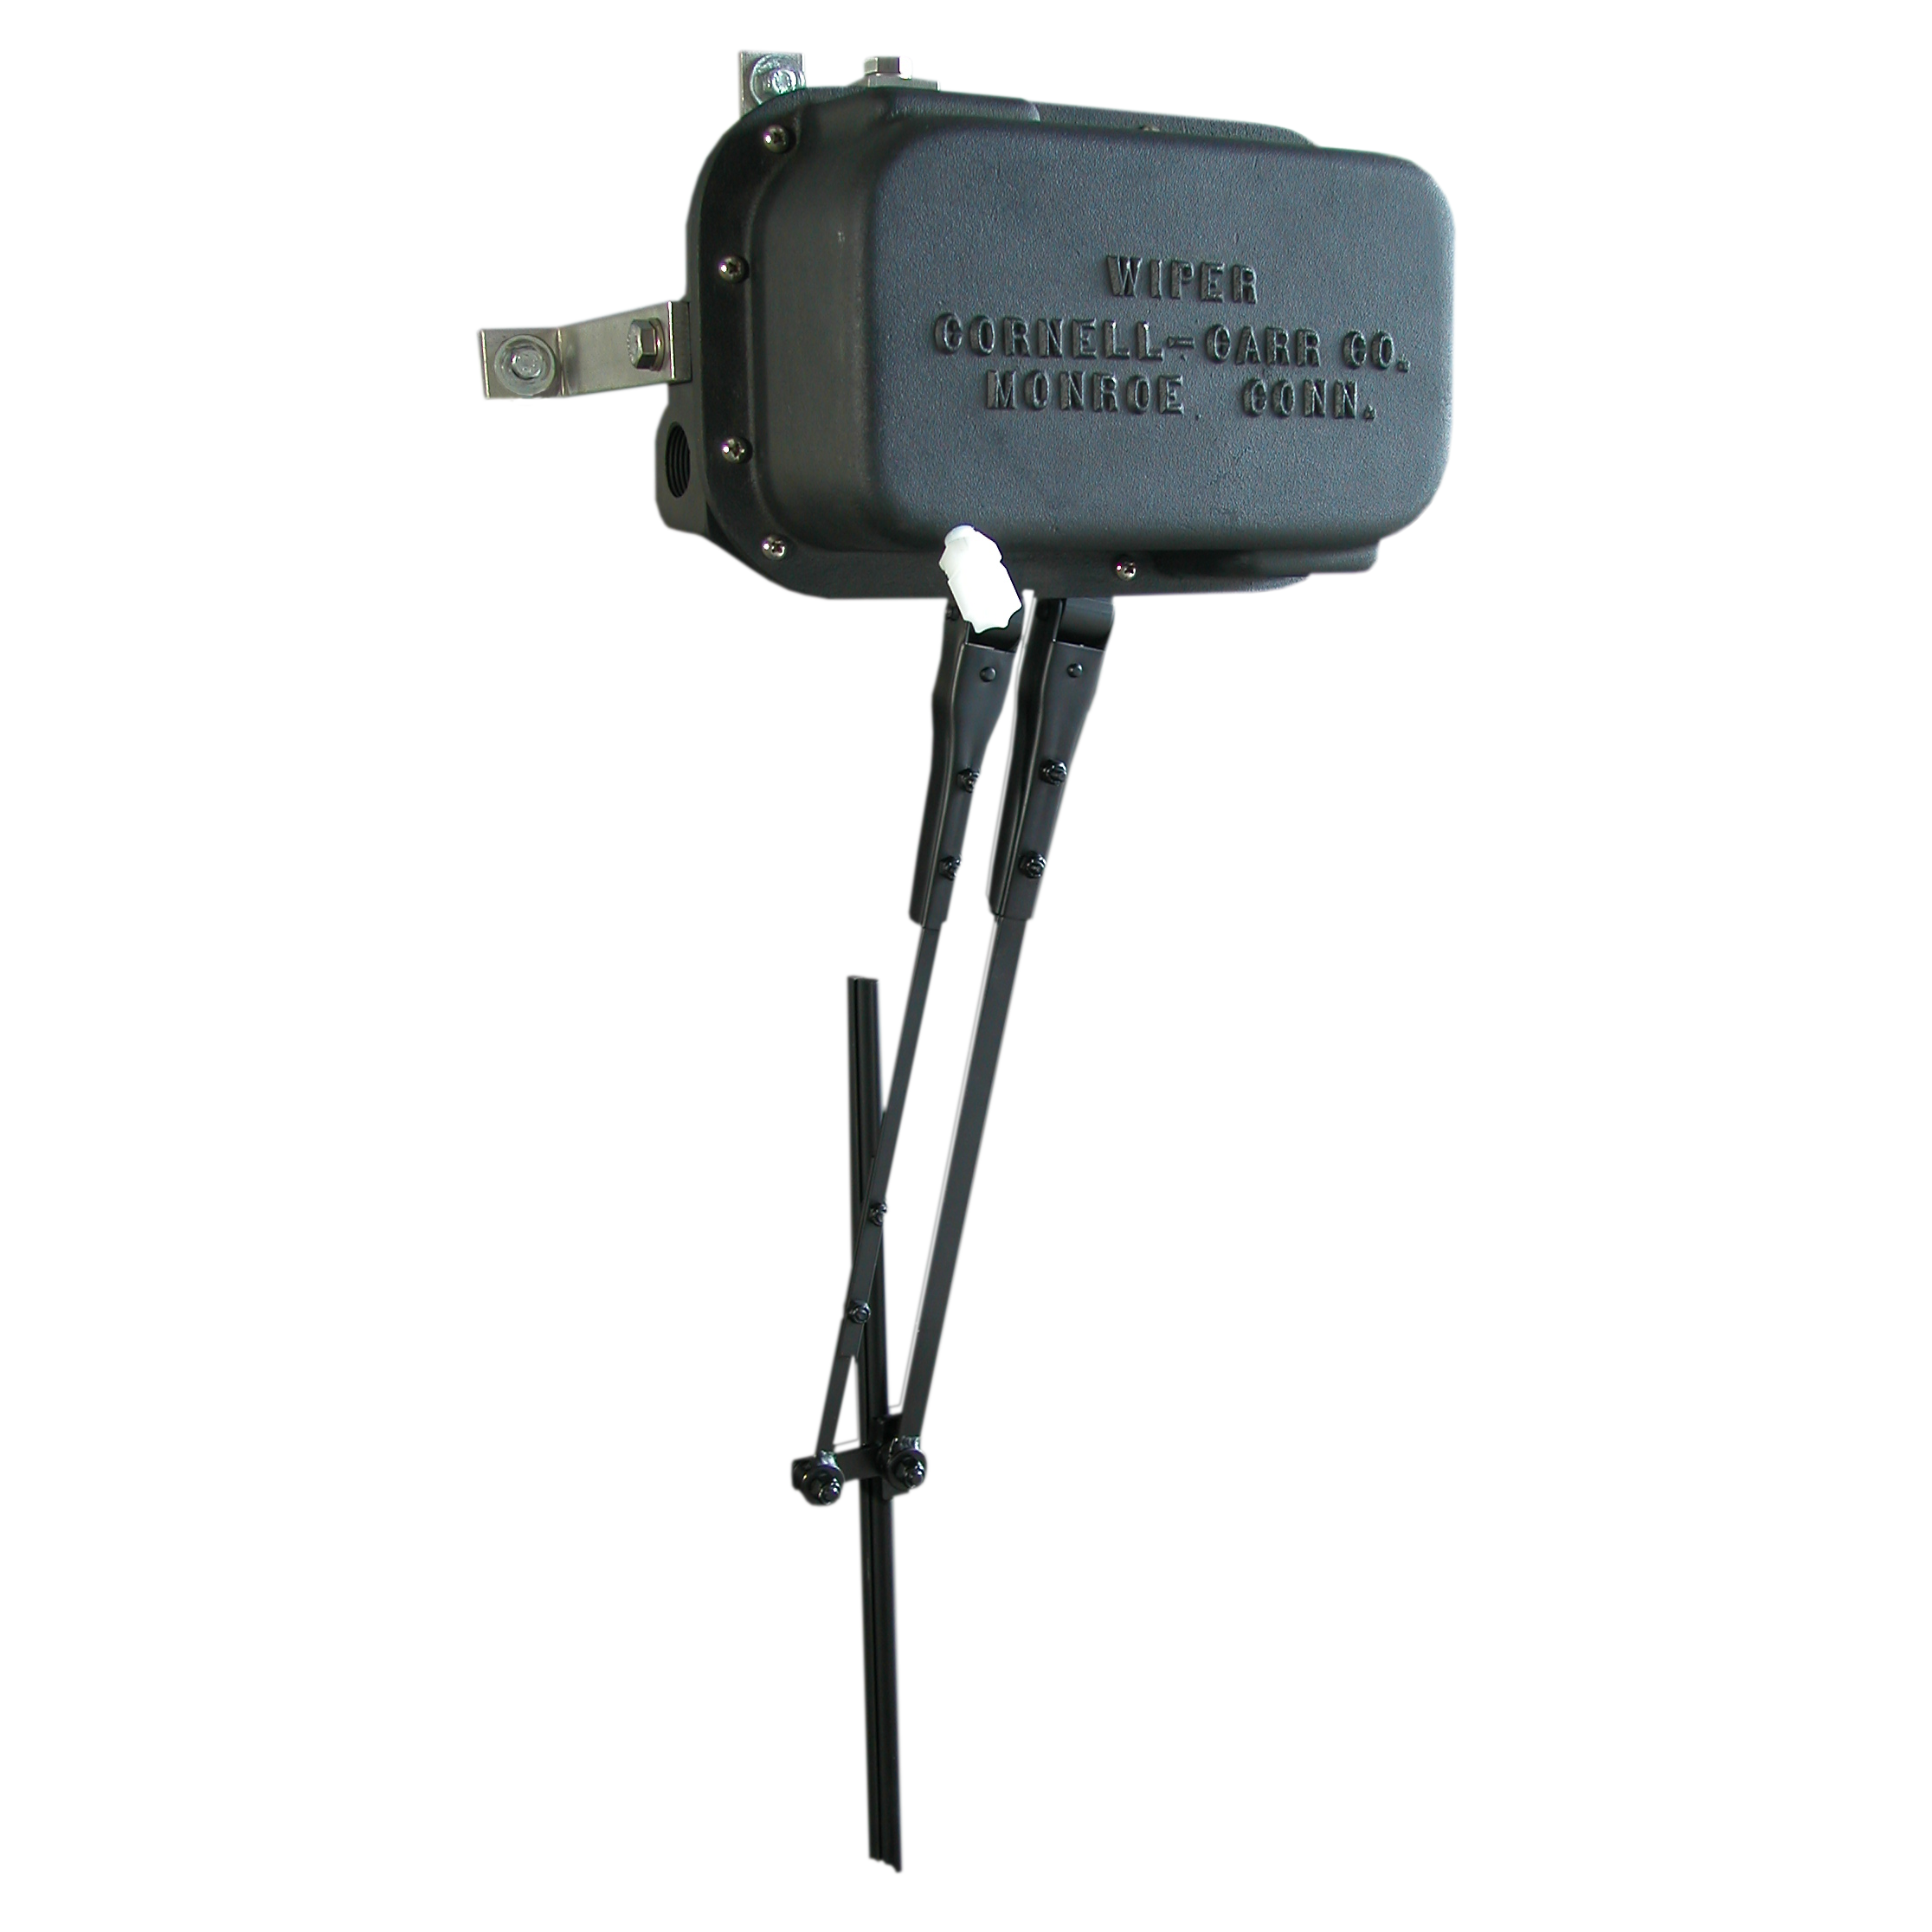 CC-5100P Commercial Outboard Wiper, Pantographic Arm